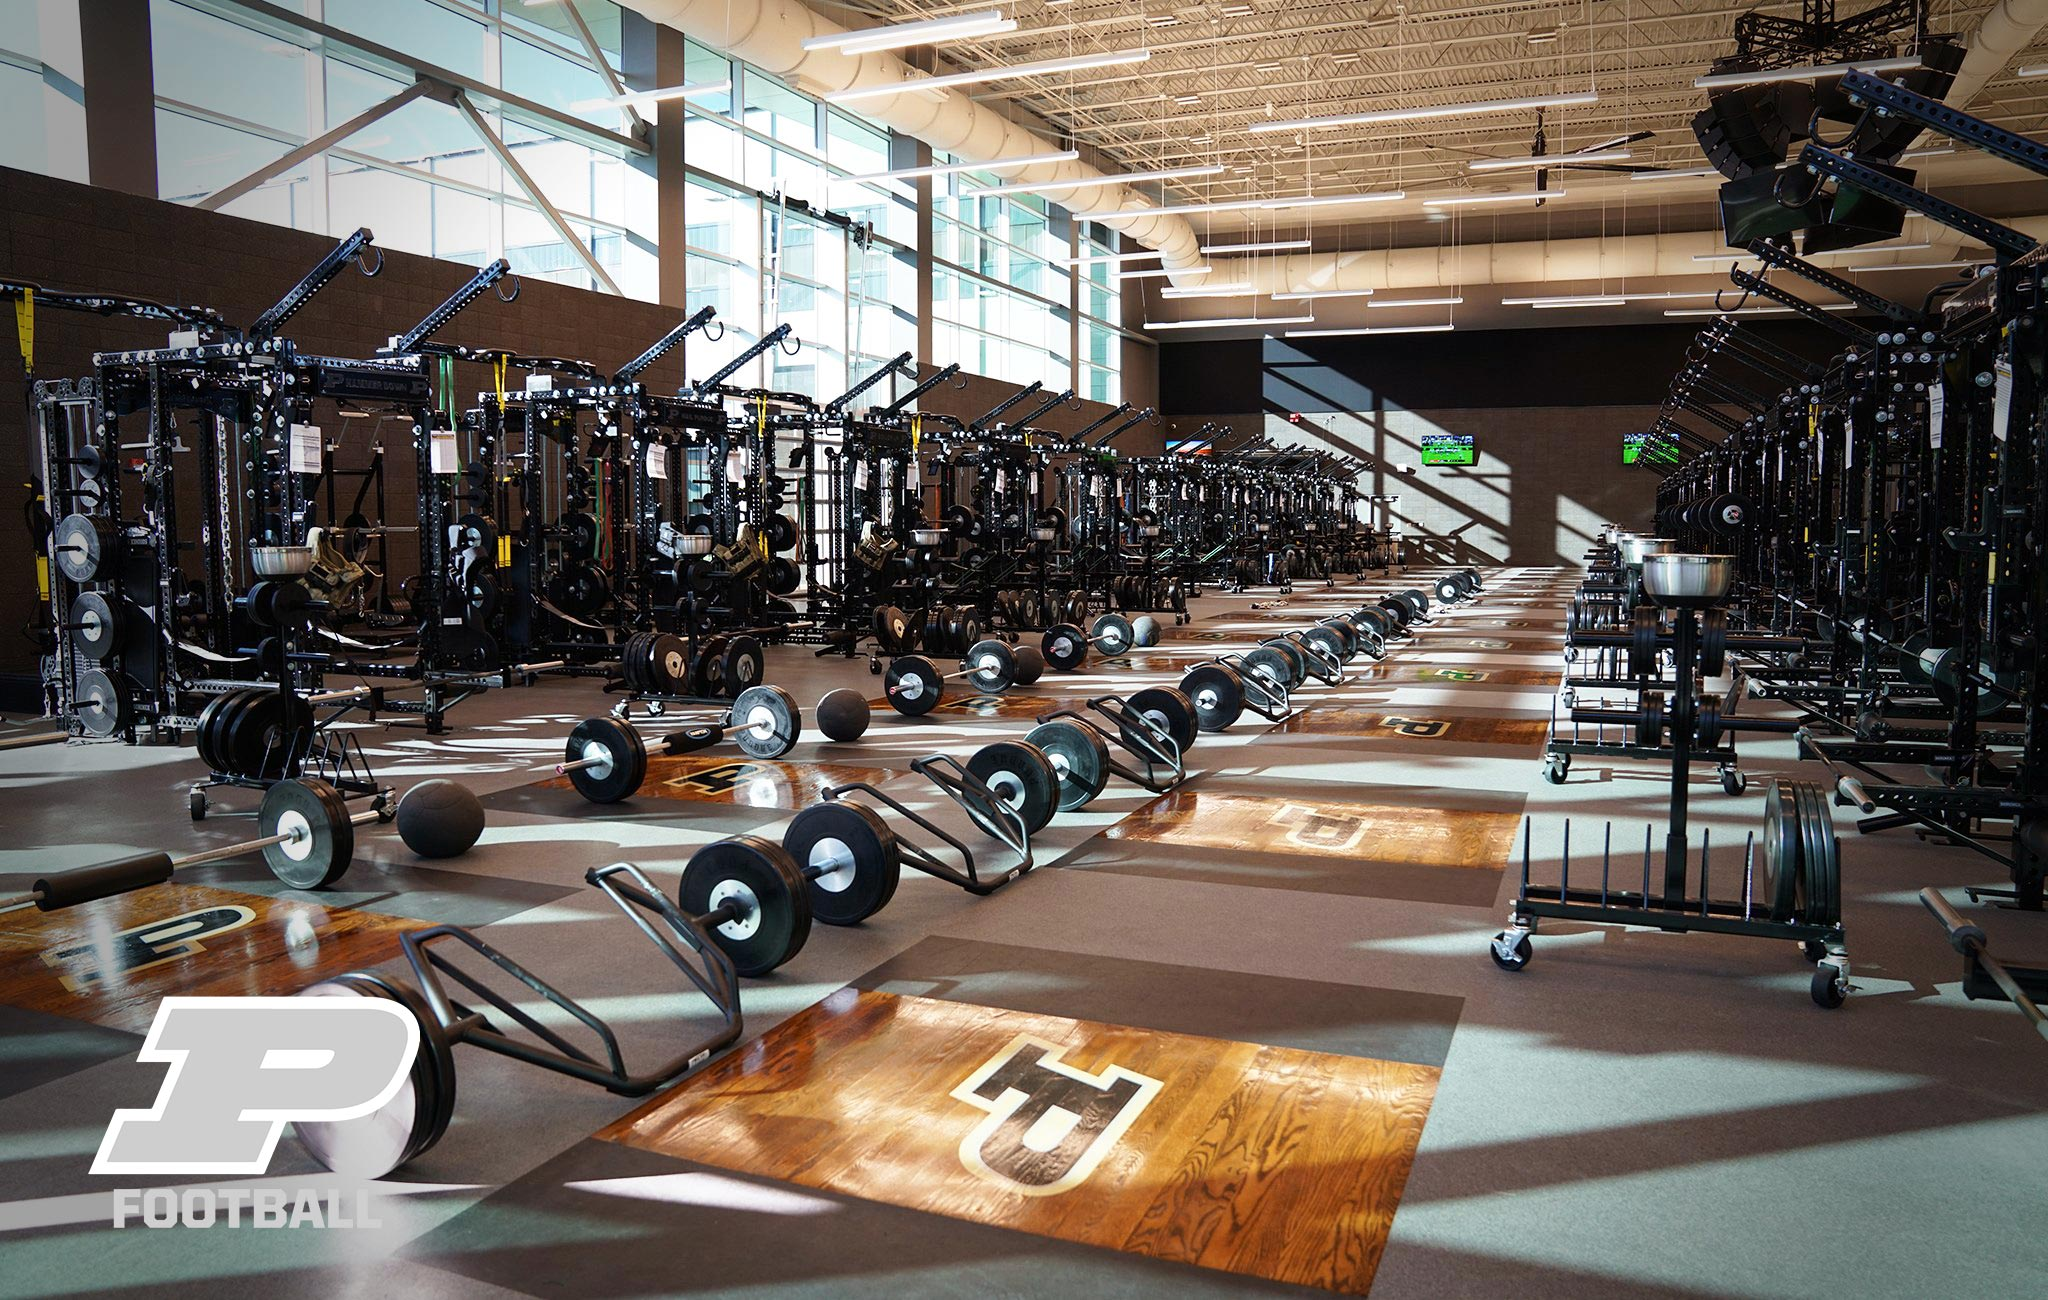 Purdue University Football Sorinex strength and conditioning facility